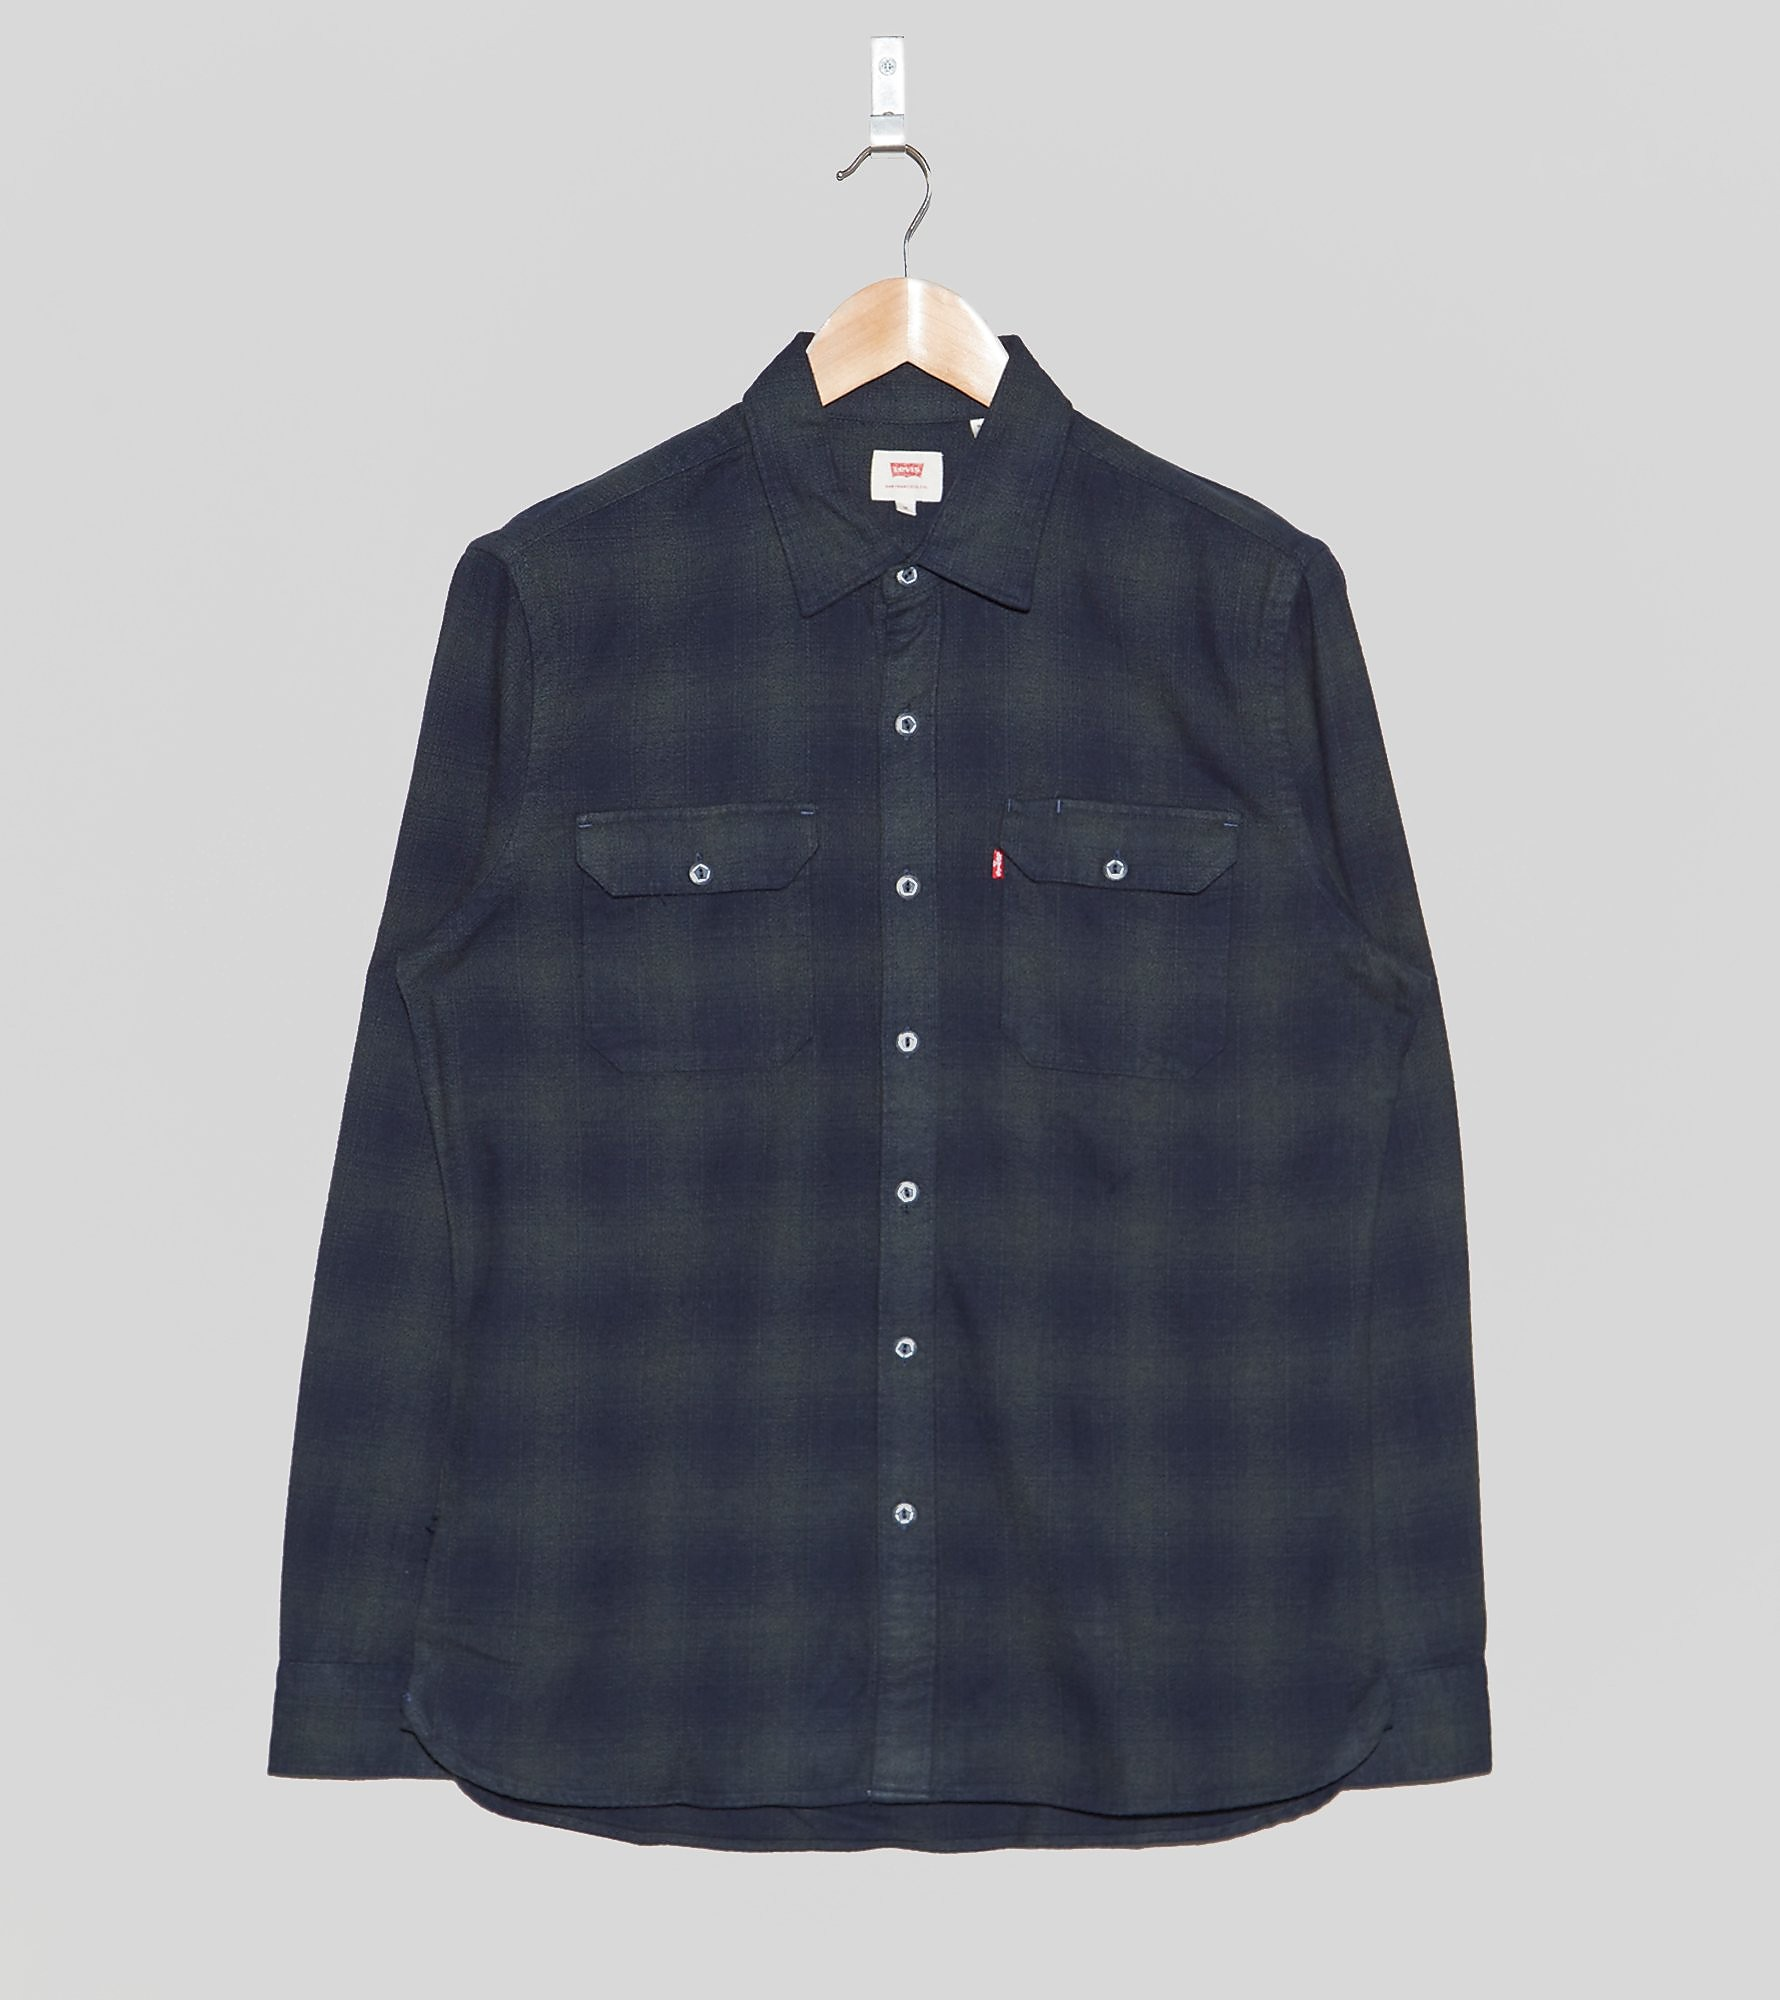 Levis Long-Sleeved Worker Shirt